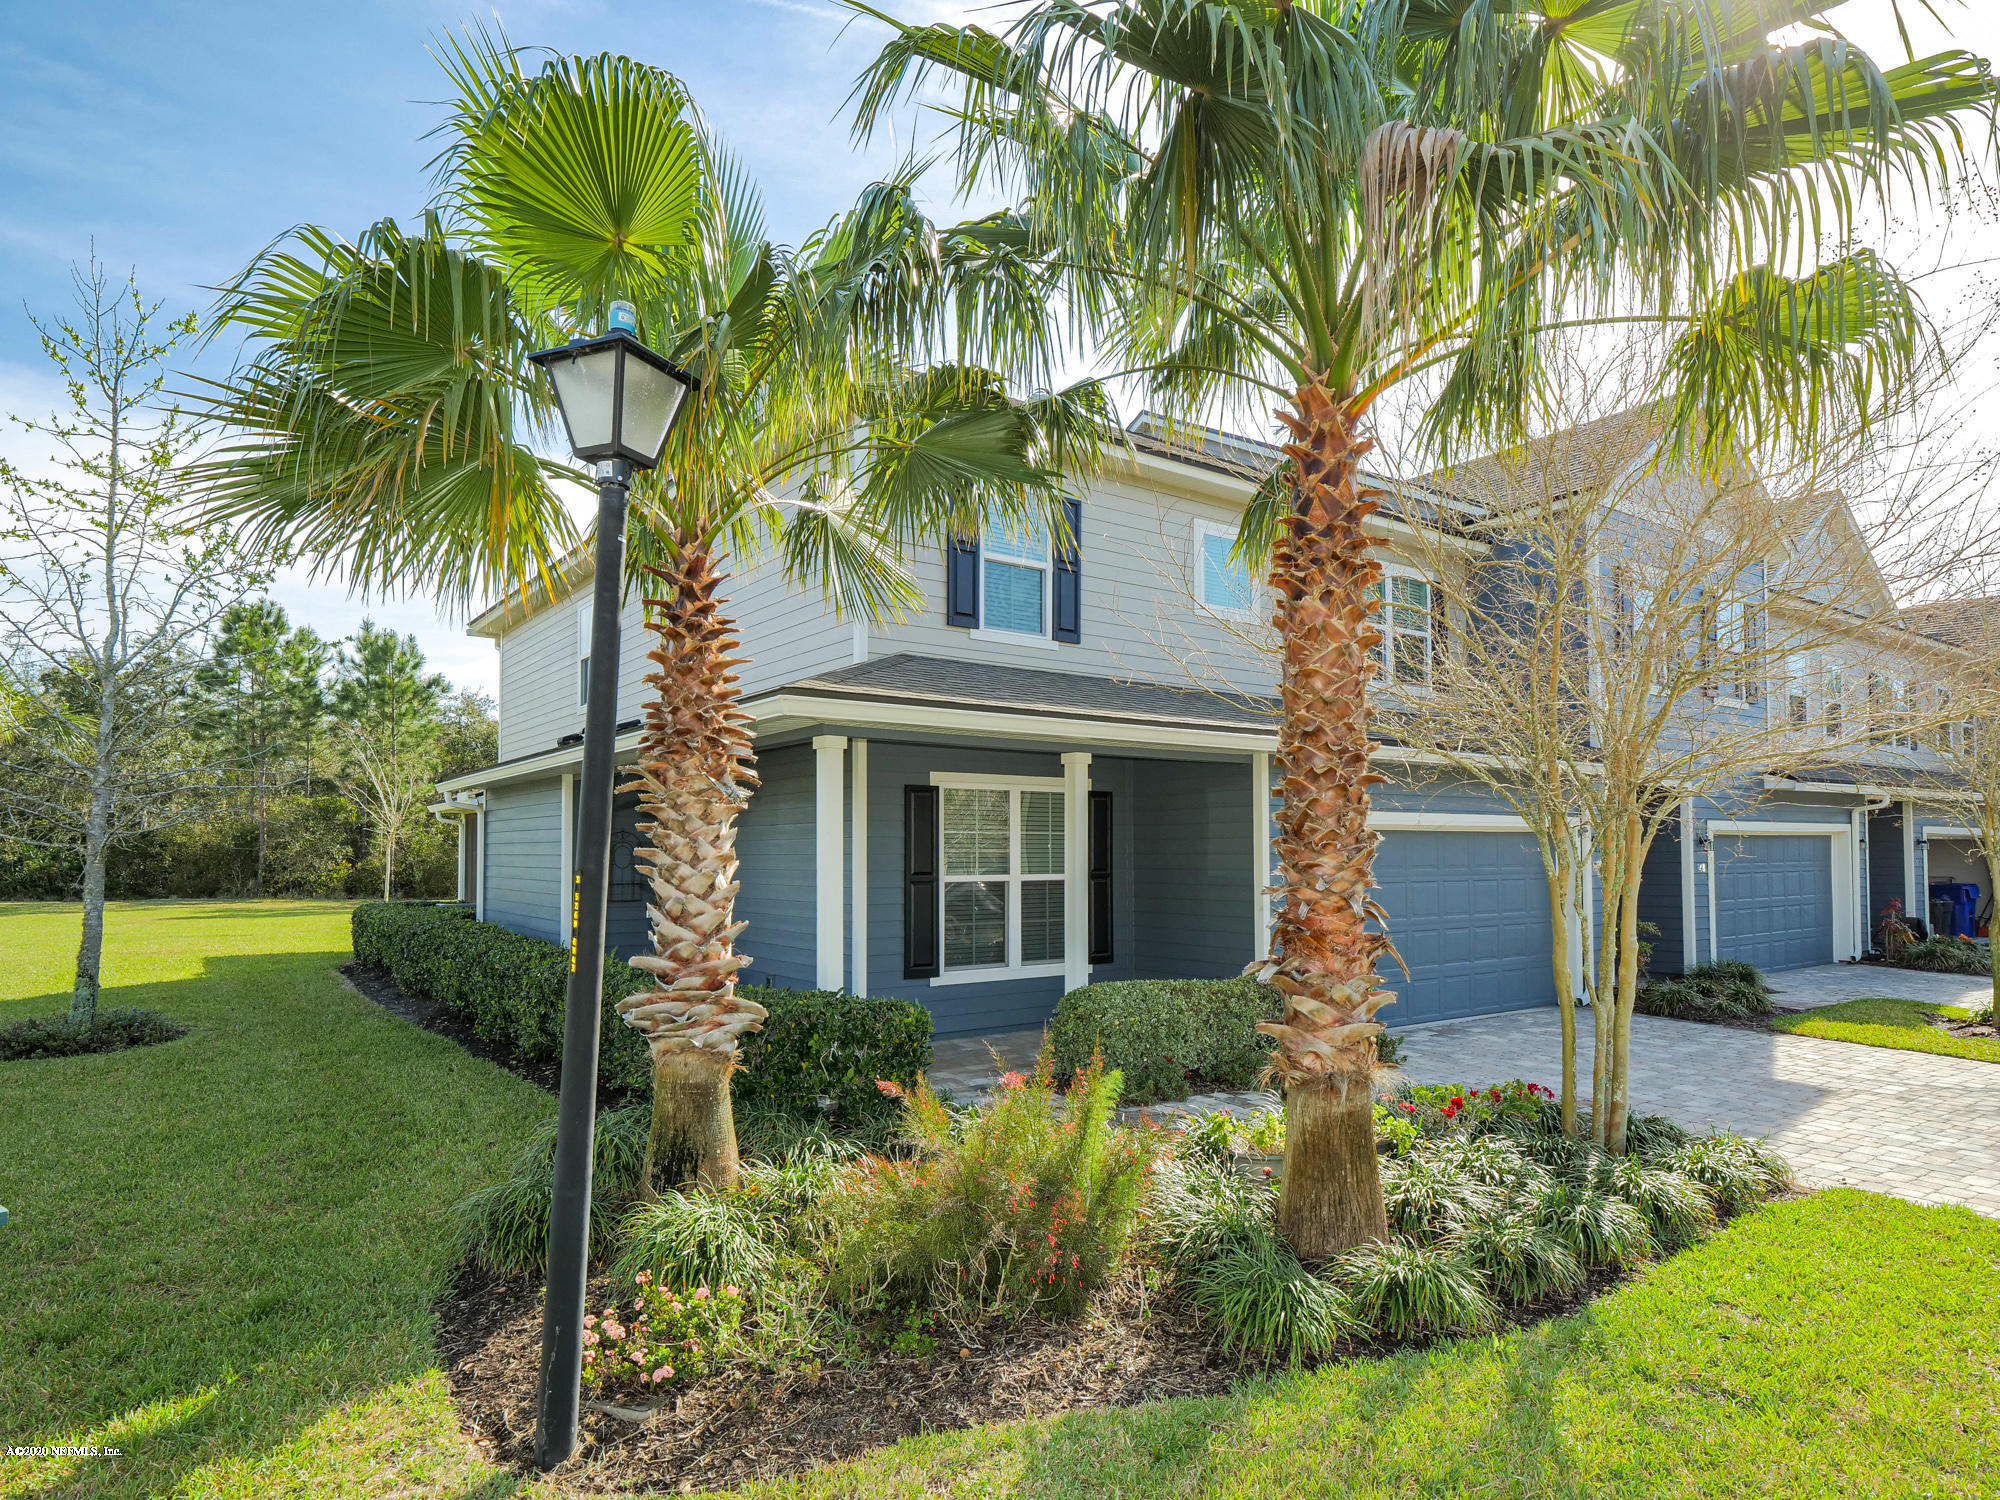 352 MAGNOLIA CREEK WALK, PONTE VEDRA, FLORIDA 32081, 4 Bedrooms Bedrooms, ,3 BathroomsBathrooms,Residential,For sale,MAGNOLIA CREEK WALK,1043608